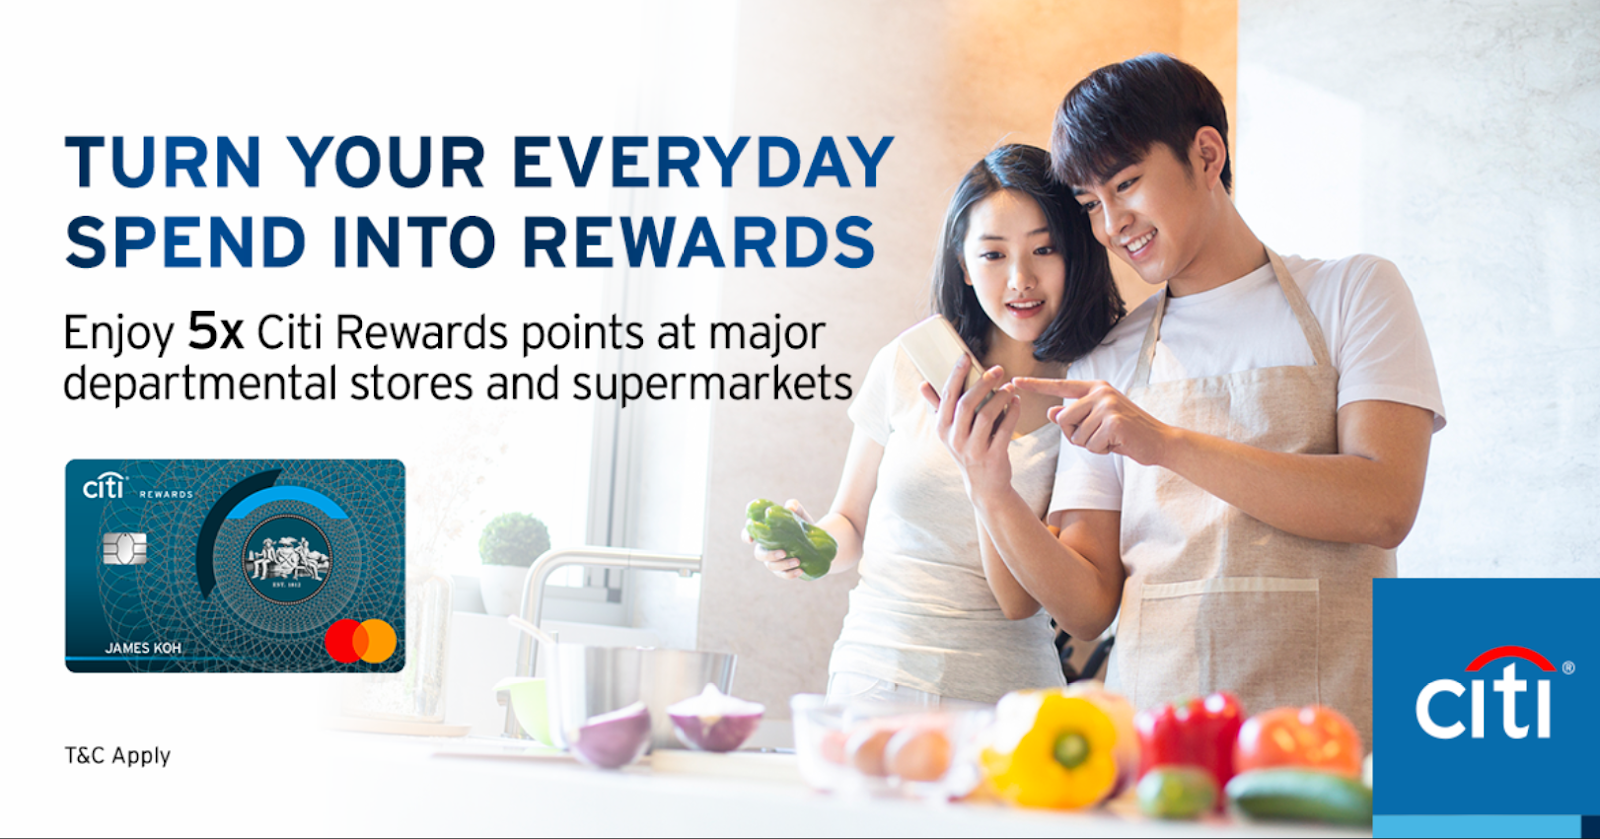 Image from Citibank (Provided to SAYS)